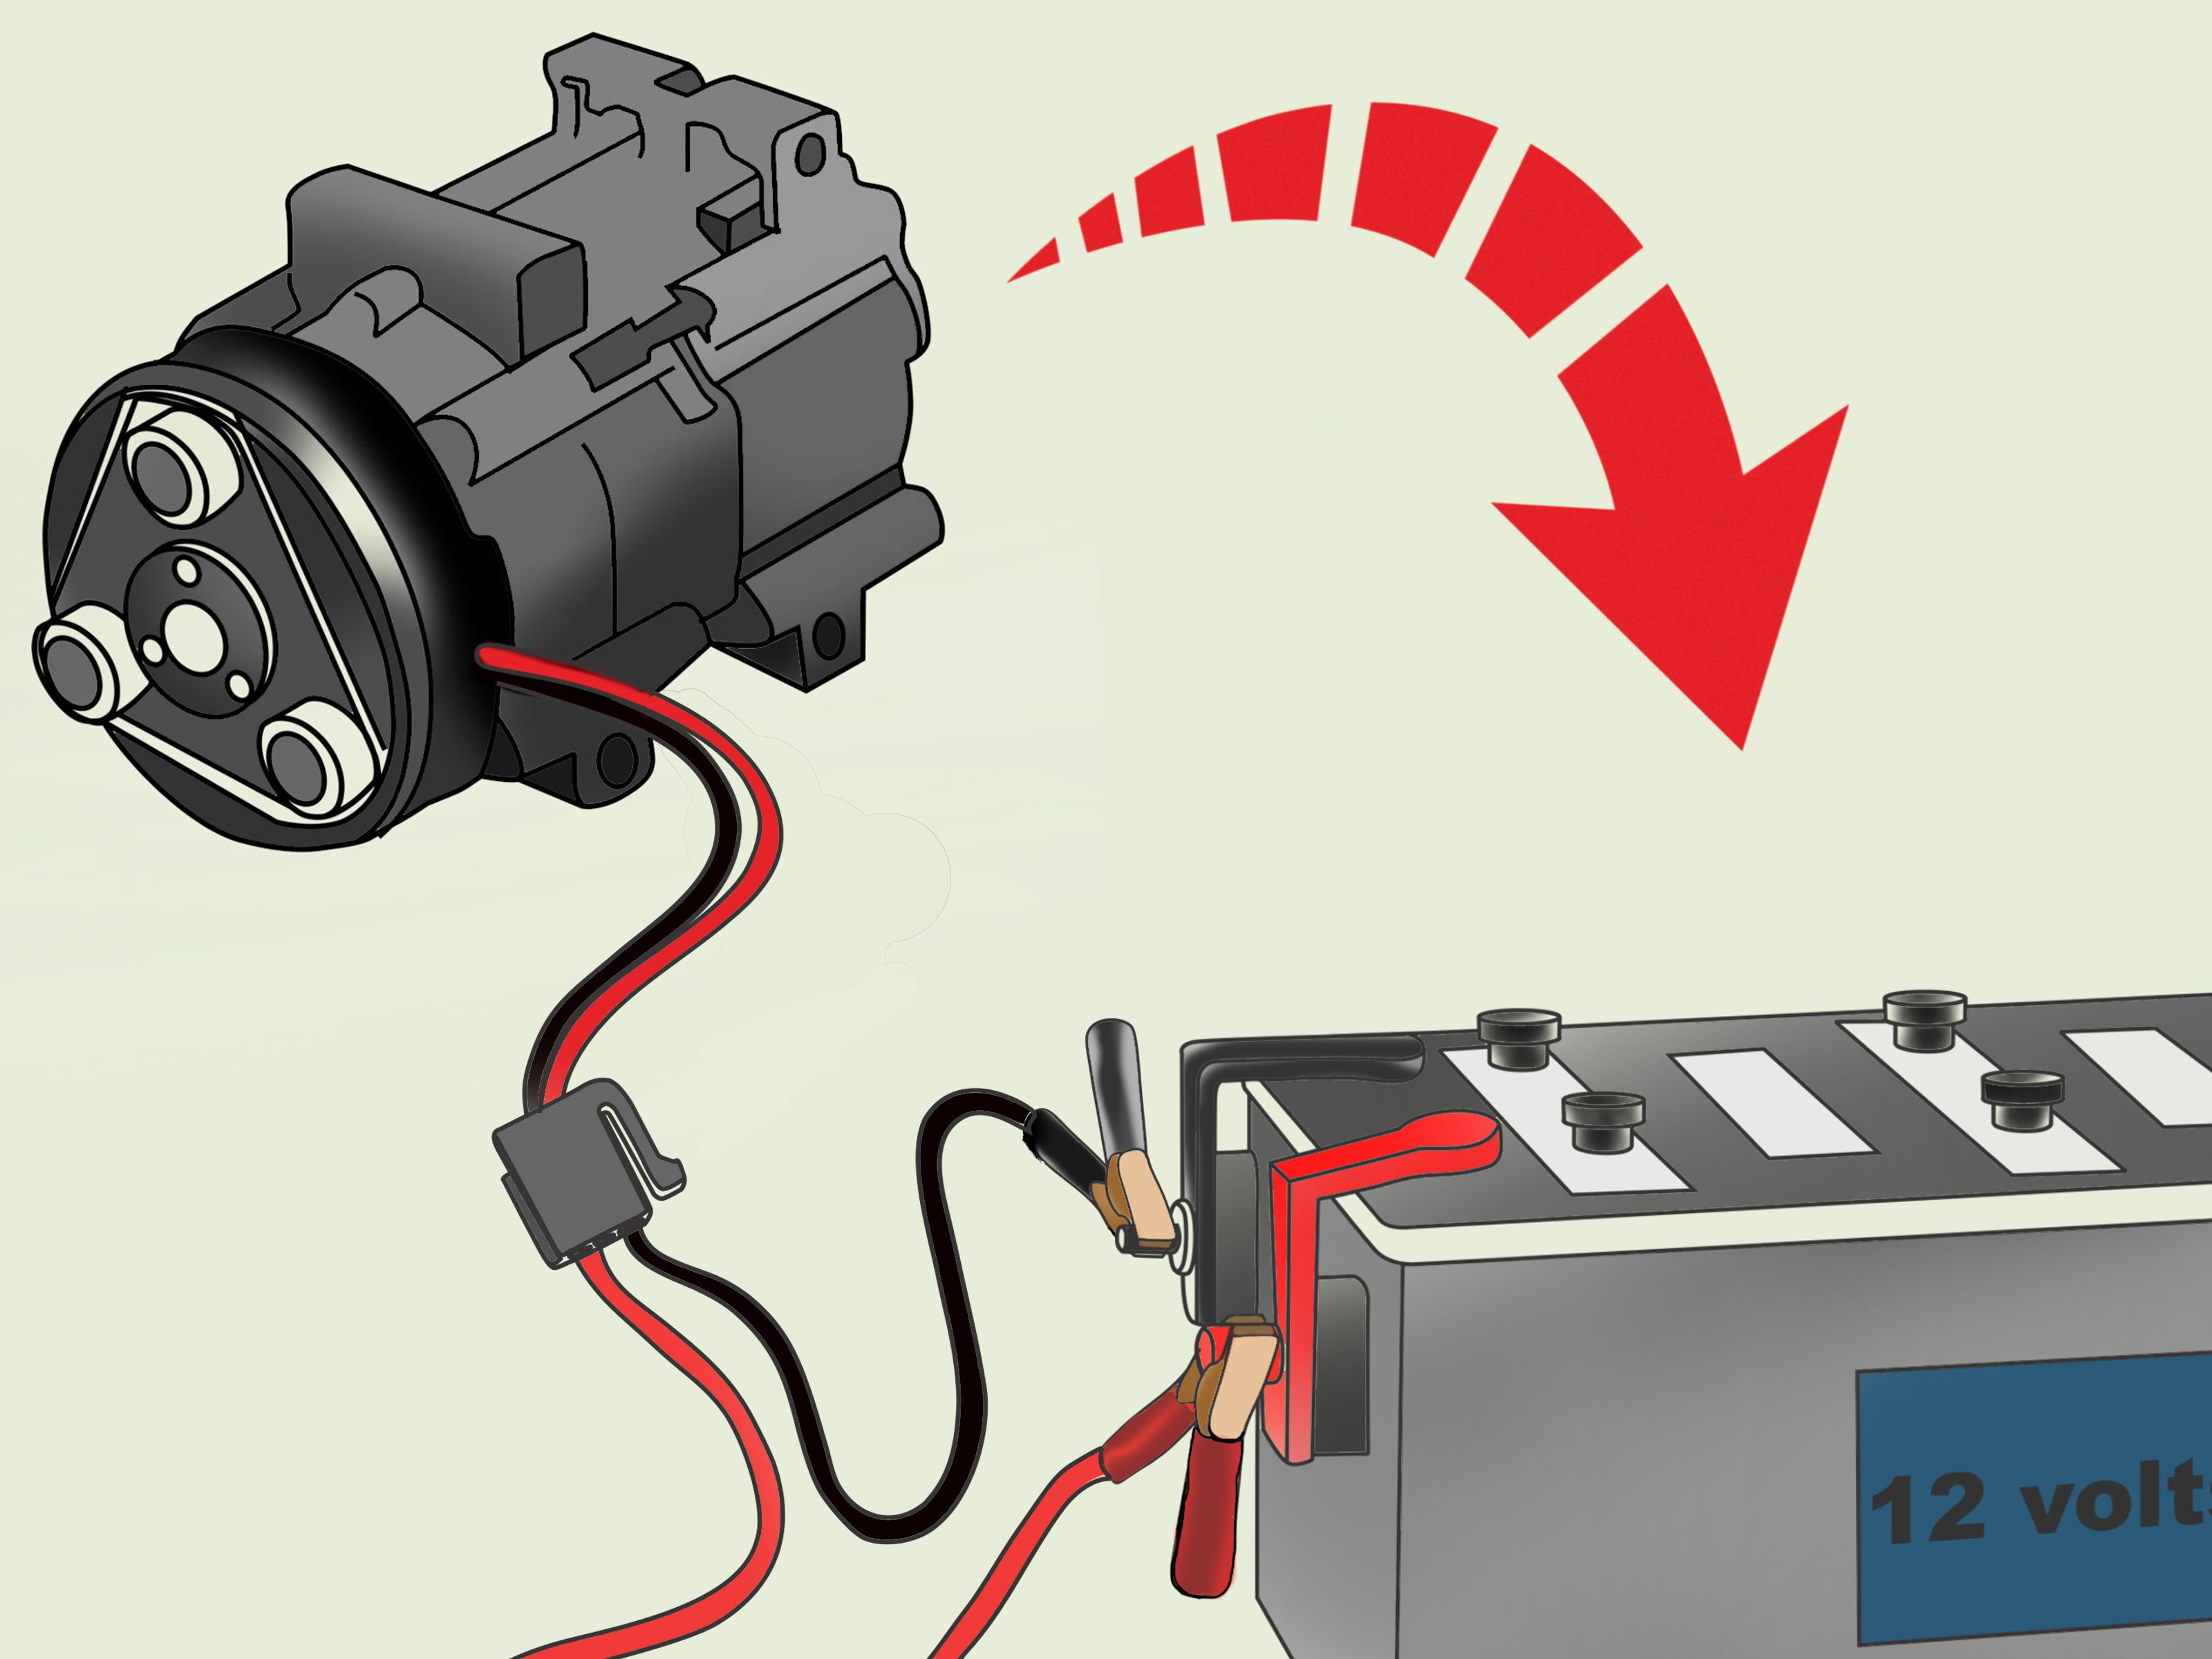 Remarkable 3 Ways To Check An Ac Compressor Wikihow Wiring Cloud Inklaidewilluminateatxorg